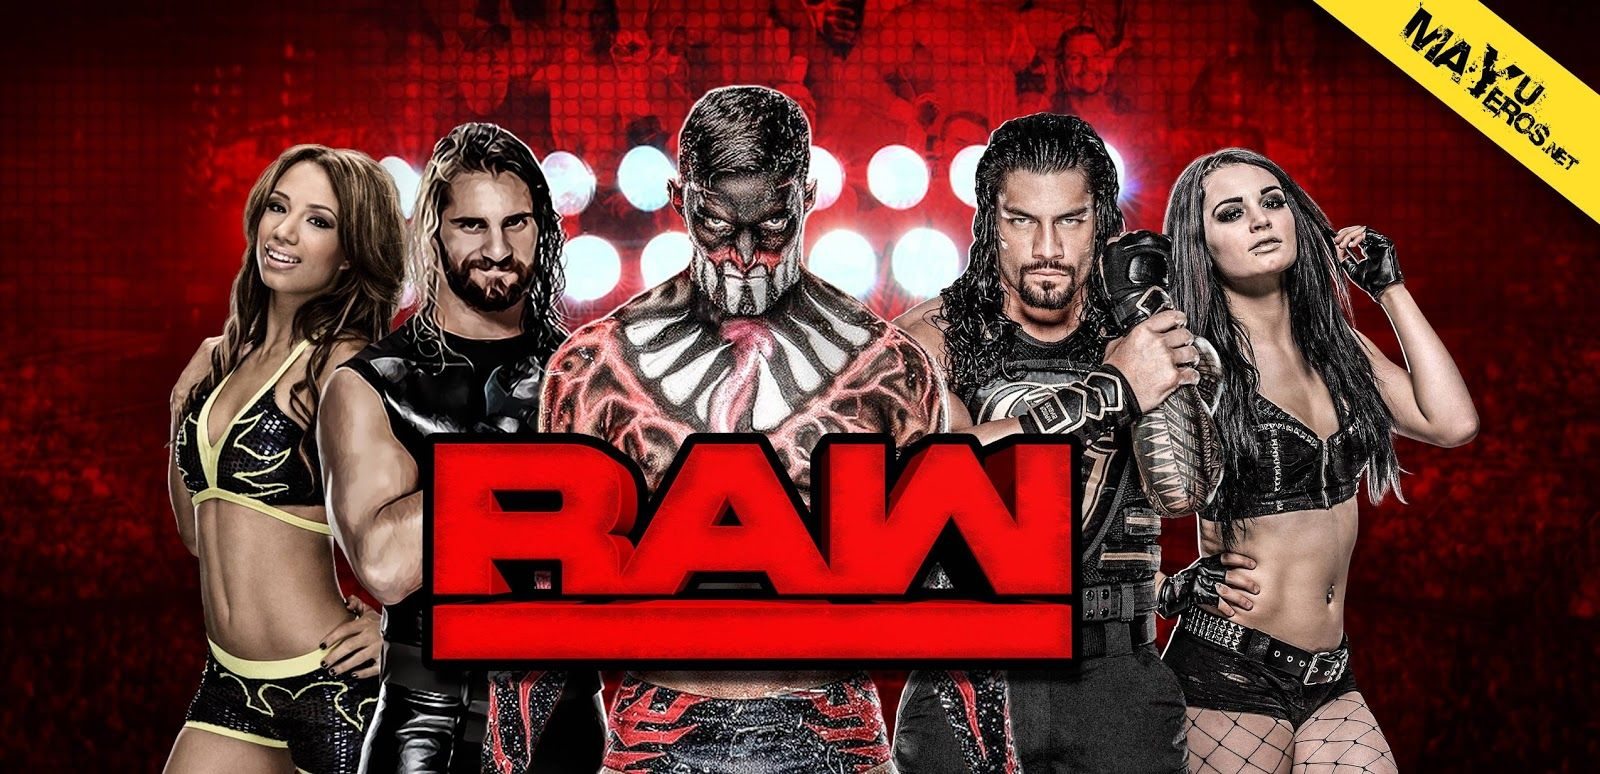 wwe-raw-hd-wallpapers